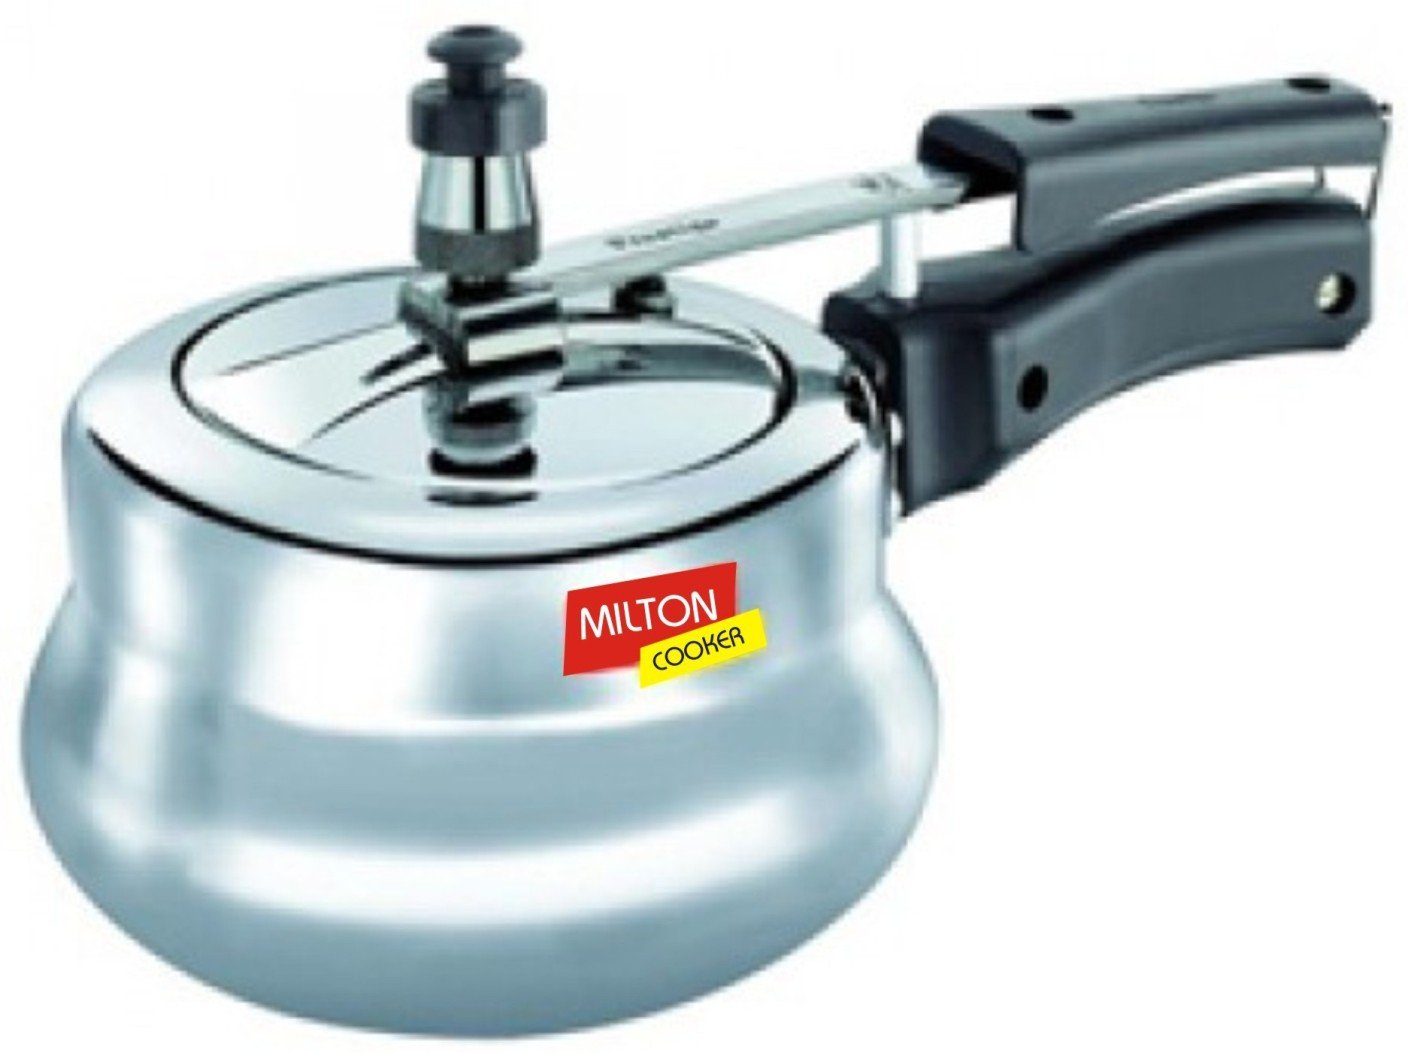 Buy Milton Shape Handi Heavy Base With Double Steel Polish Pressure Cooker Induction Circuit Boardelectric Cookerinduction 7 L Online At Low Prices In India